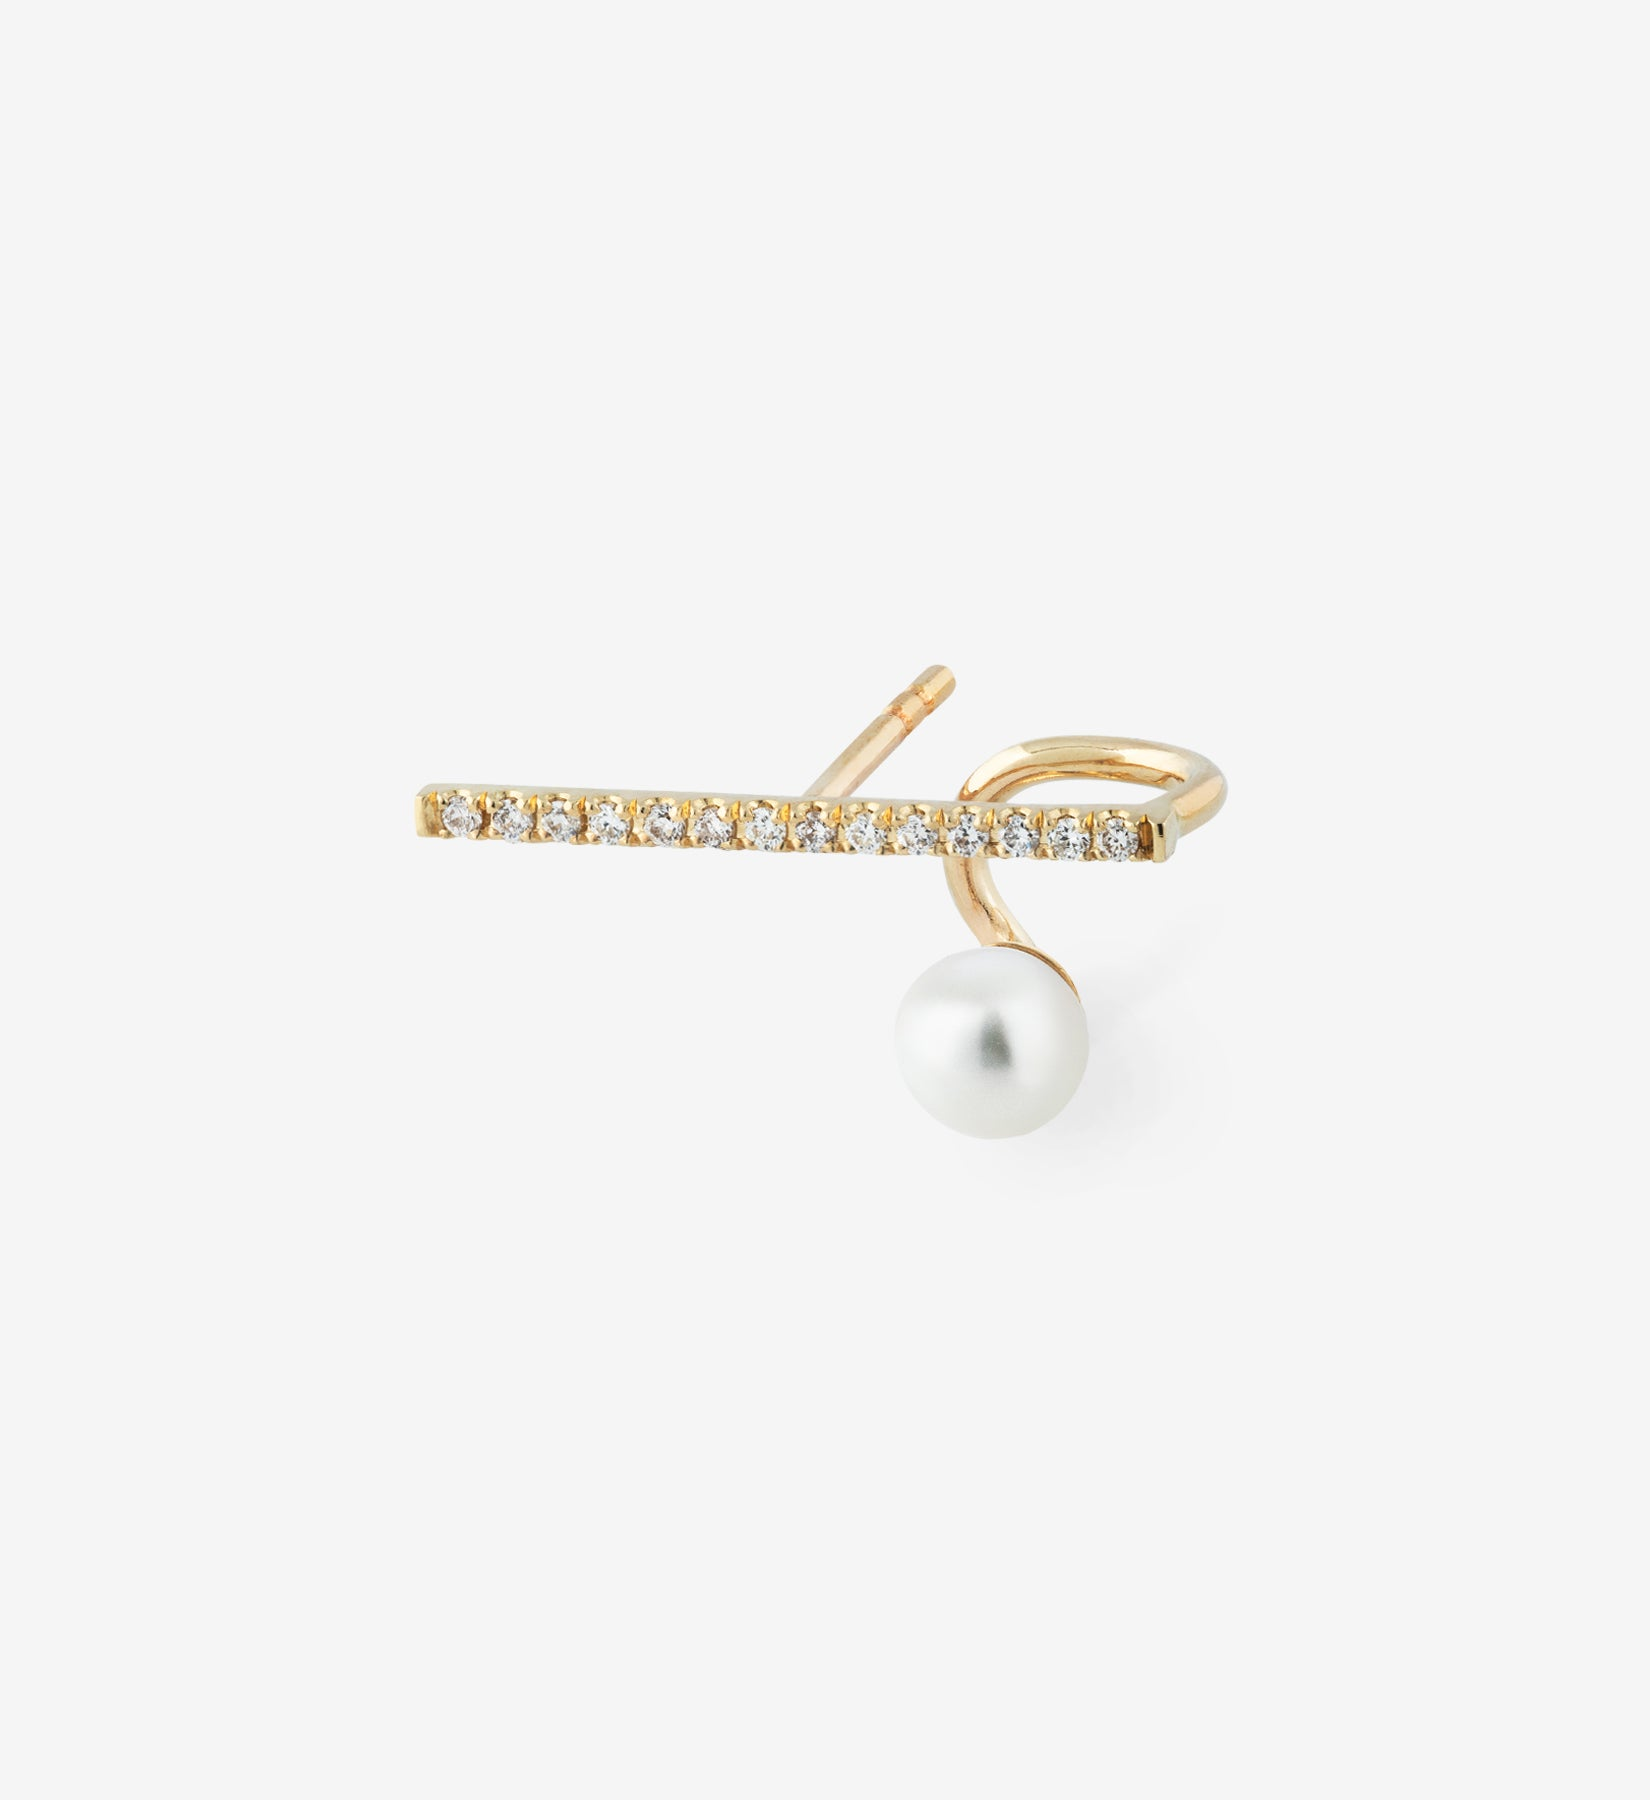 Floating Pearl Horizontal Diamond Earring 06 - Single